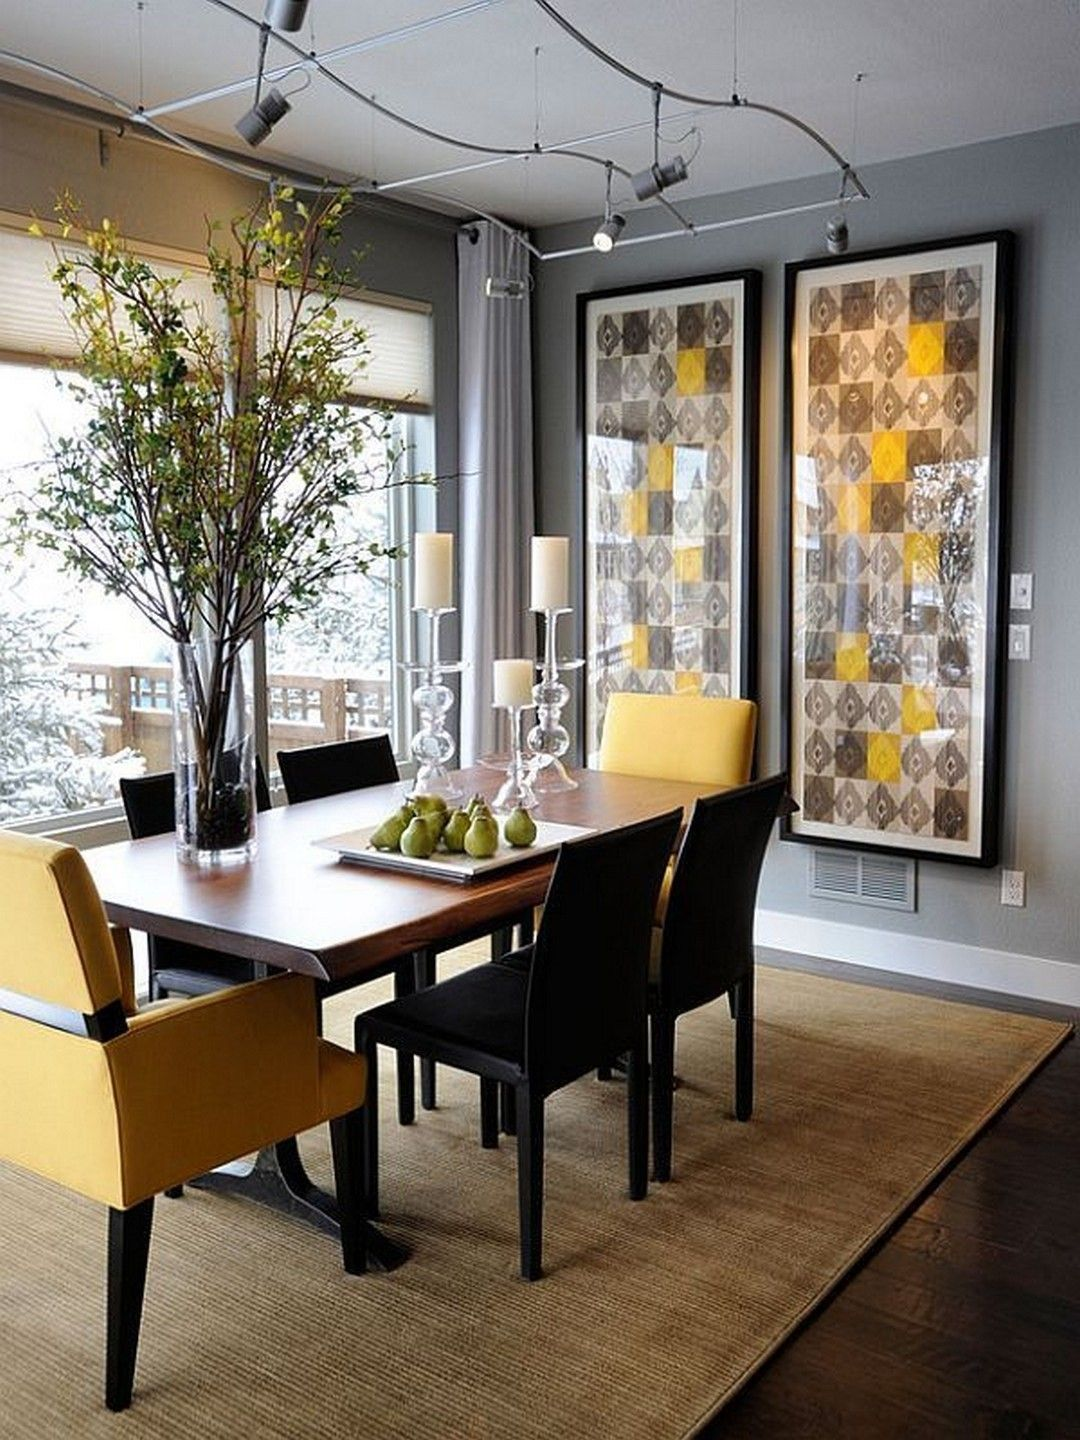 Inspiration Modern Dining Room Design Ideas For A Unique Look 8